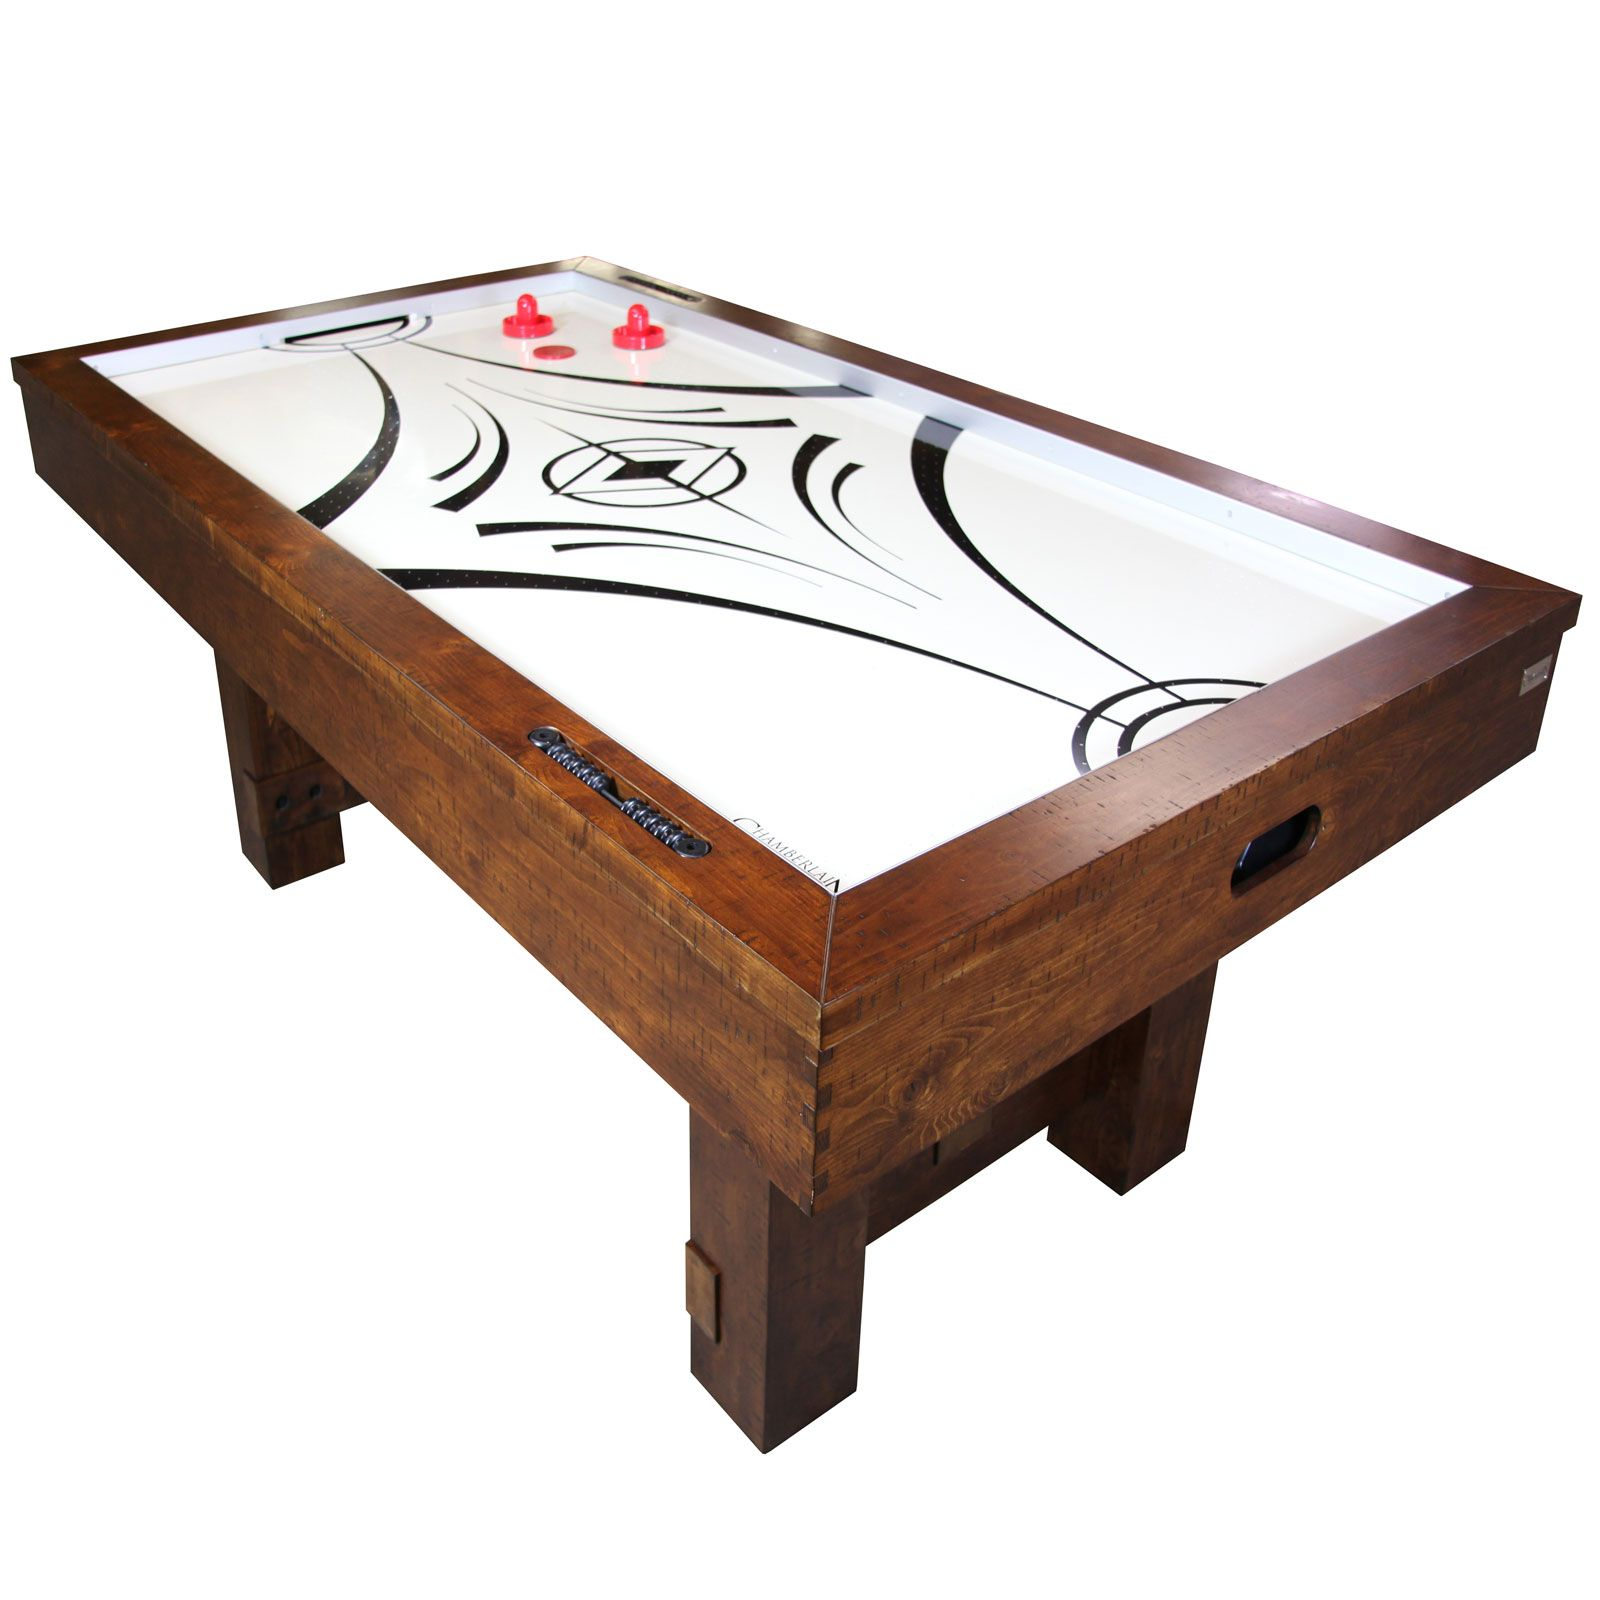 Nashville Nights Distressed Wood Air Hockey Table How to